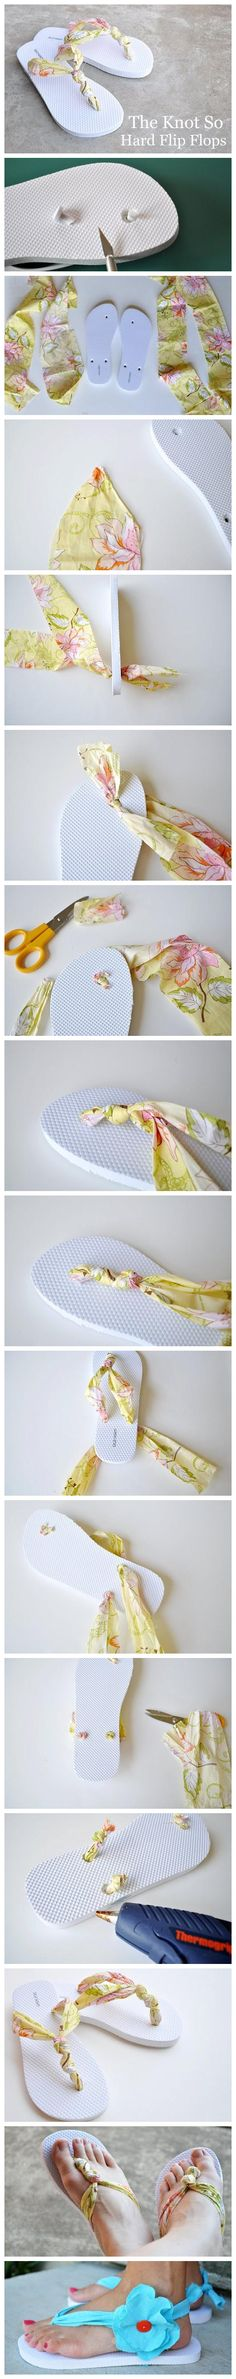 DIY Flip Flops--um if I had thought of this I would have worn them a LOT more often.